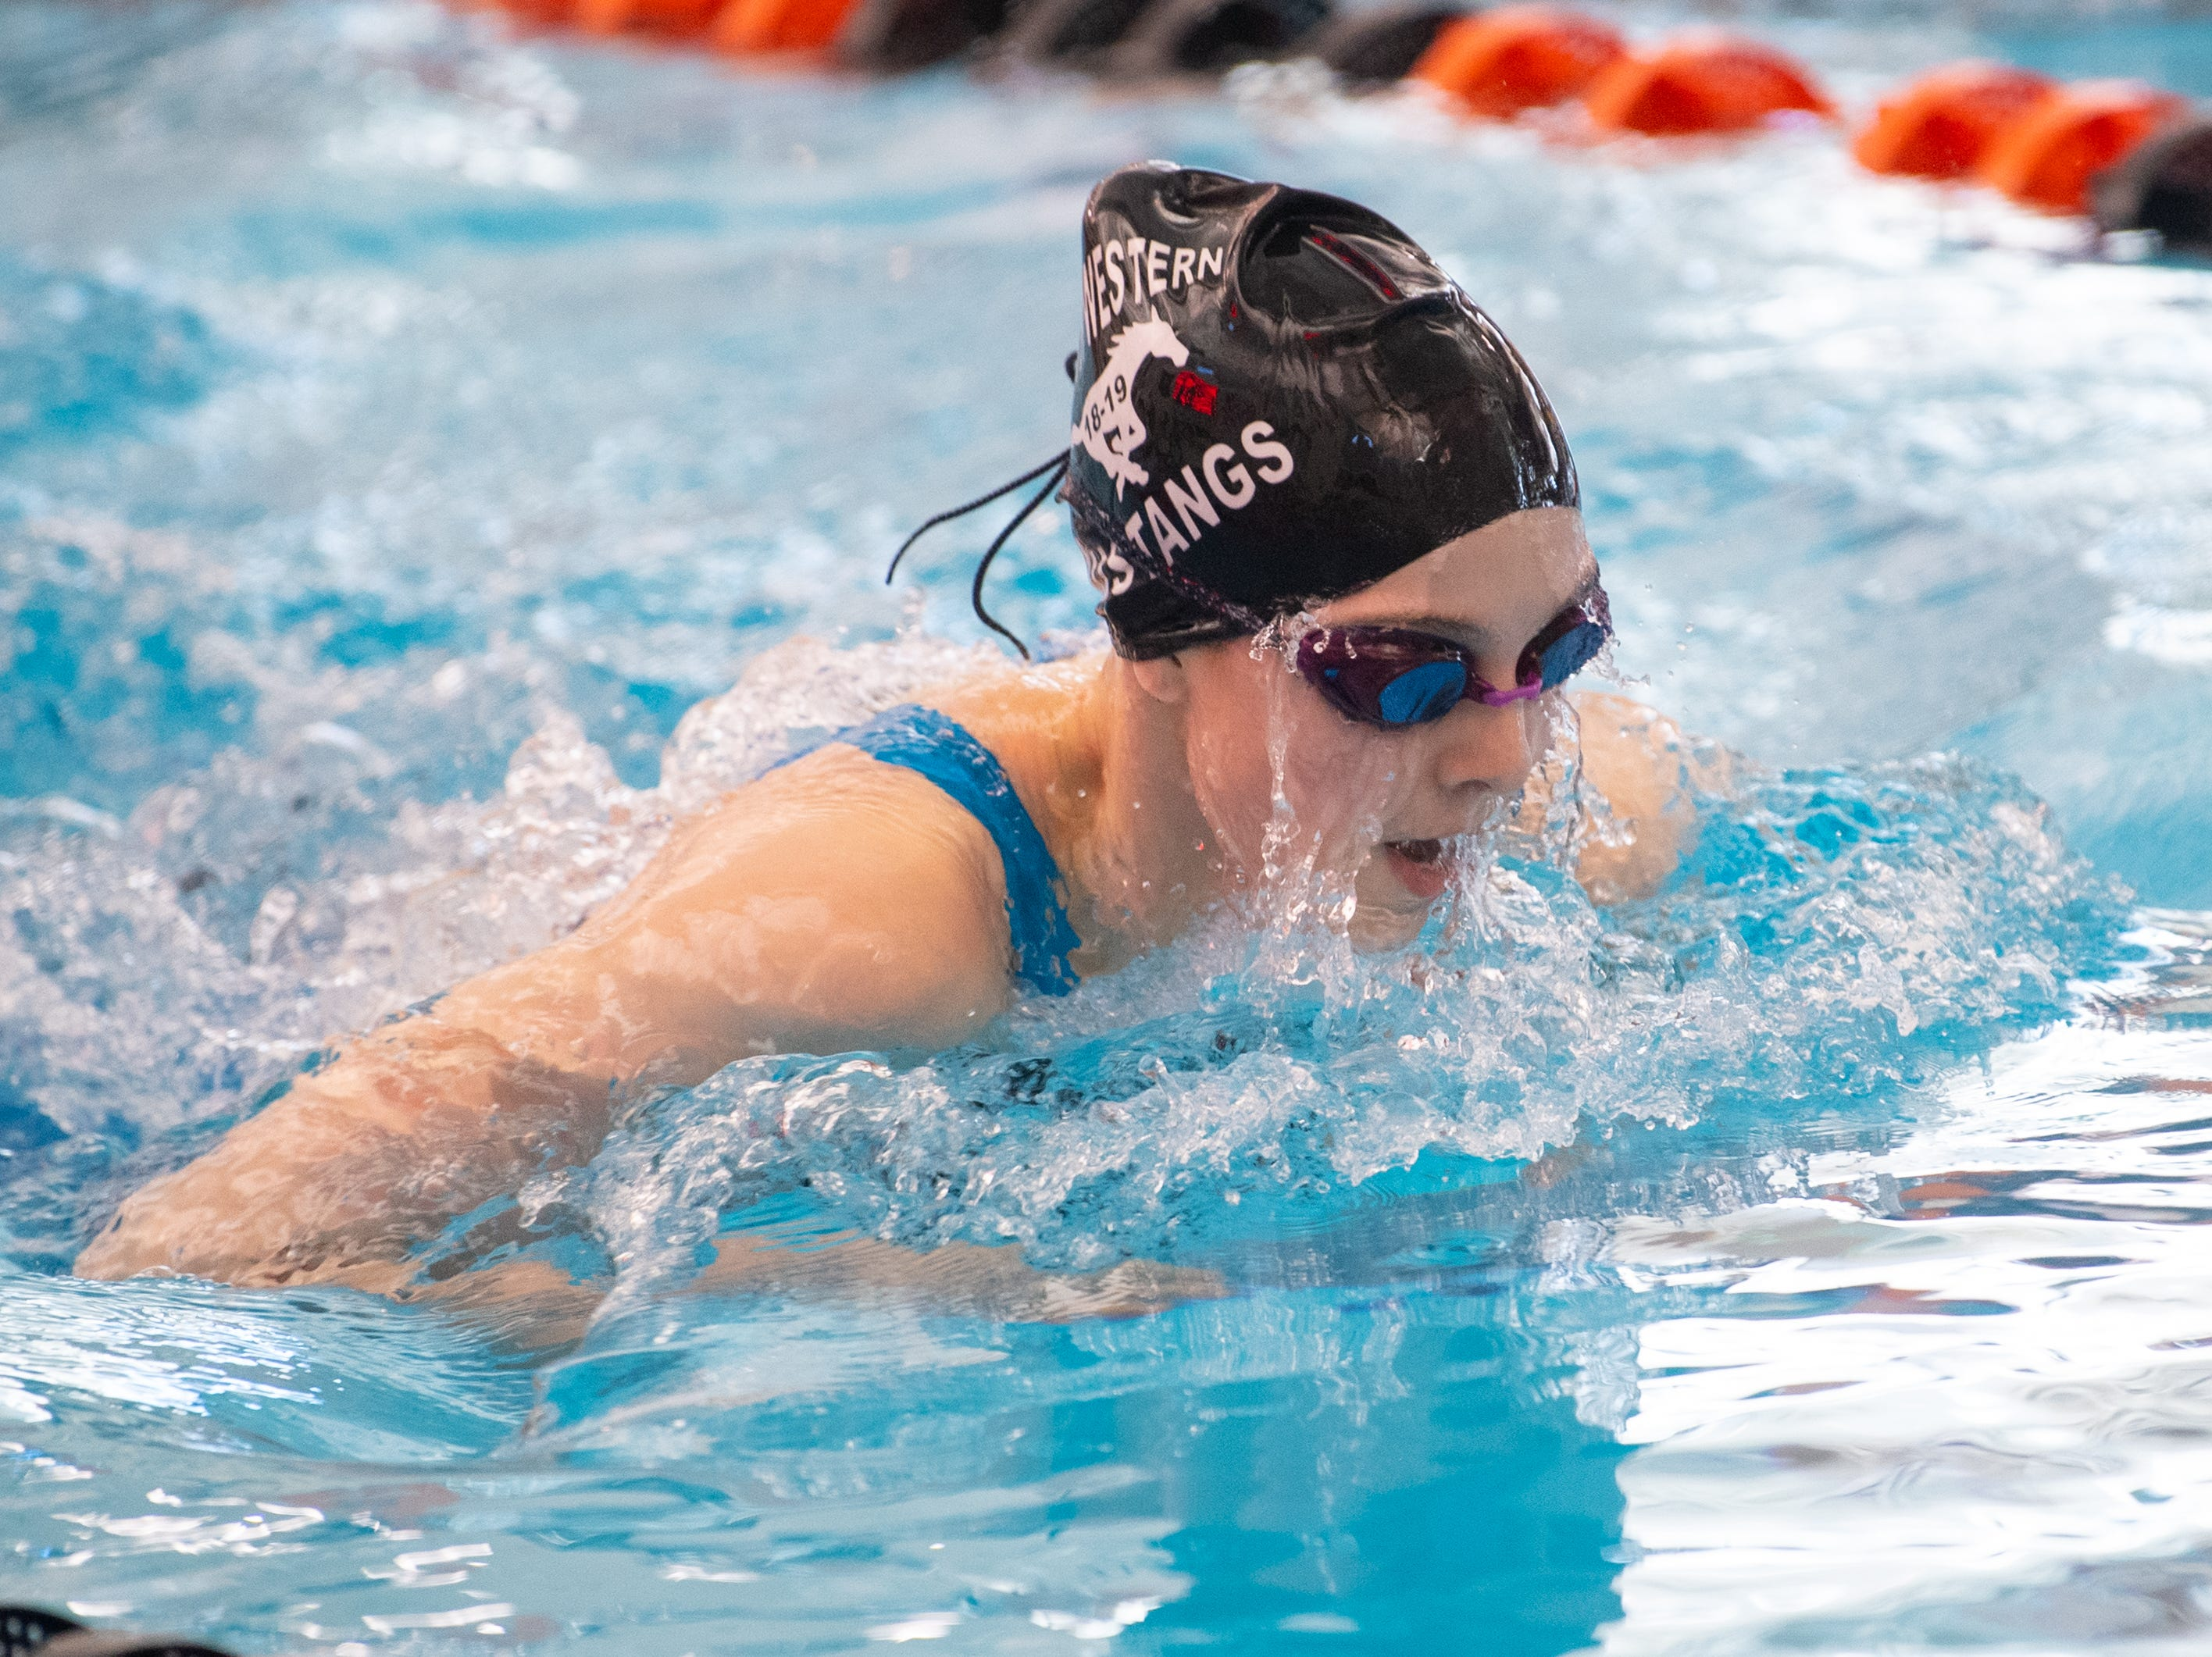 Megan Bish of South Western competes in the Girls 100 Yard Breaststroke during the 2019 YAIAA Swimming and Diving Championships at Central York High School, February 9, 2019.